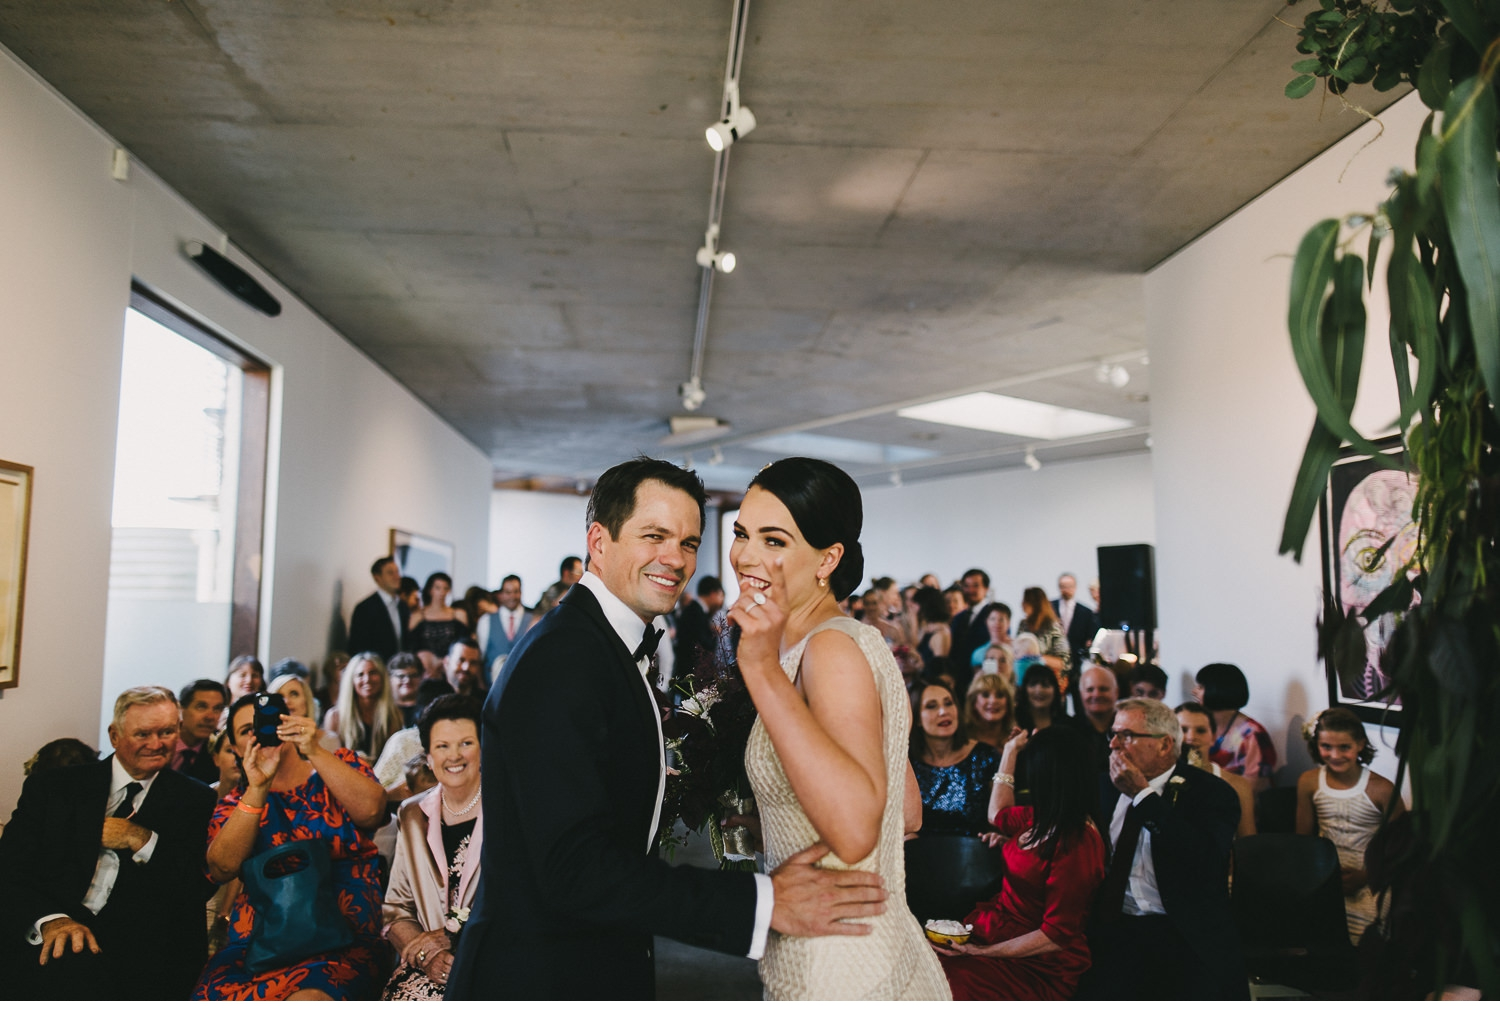 Morgan Roberts Photography_Wedding_nishi gallery hotel hotel_Jay and Lucy 2068.jpg